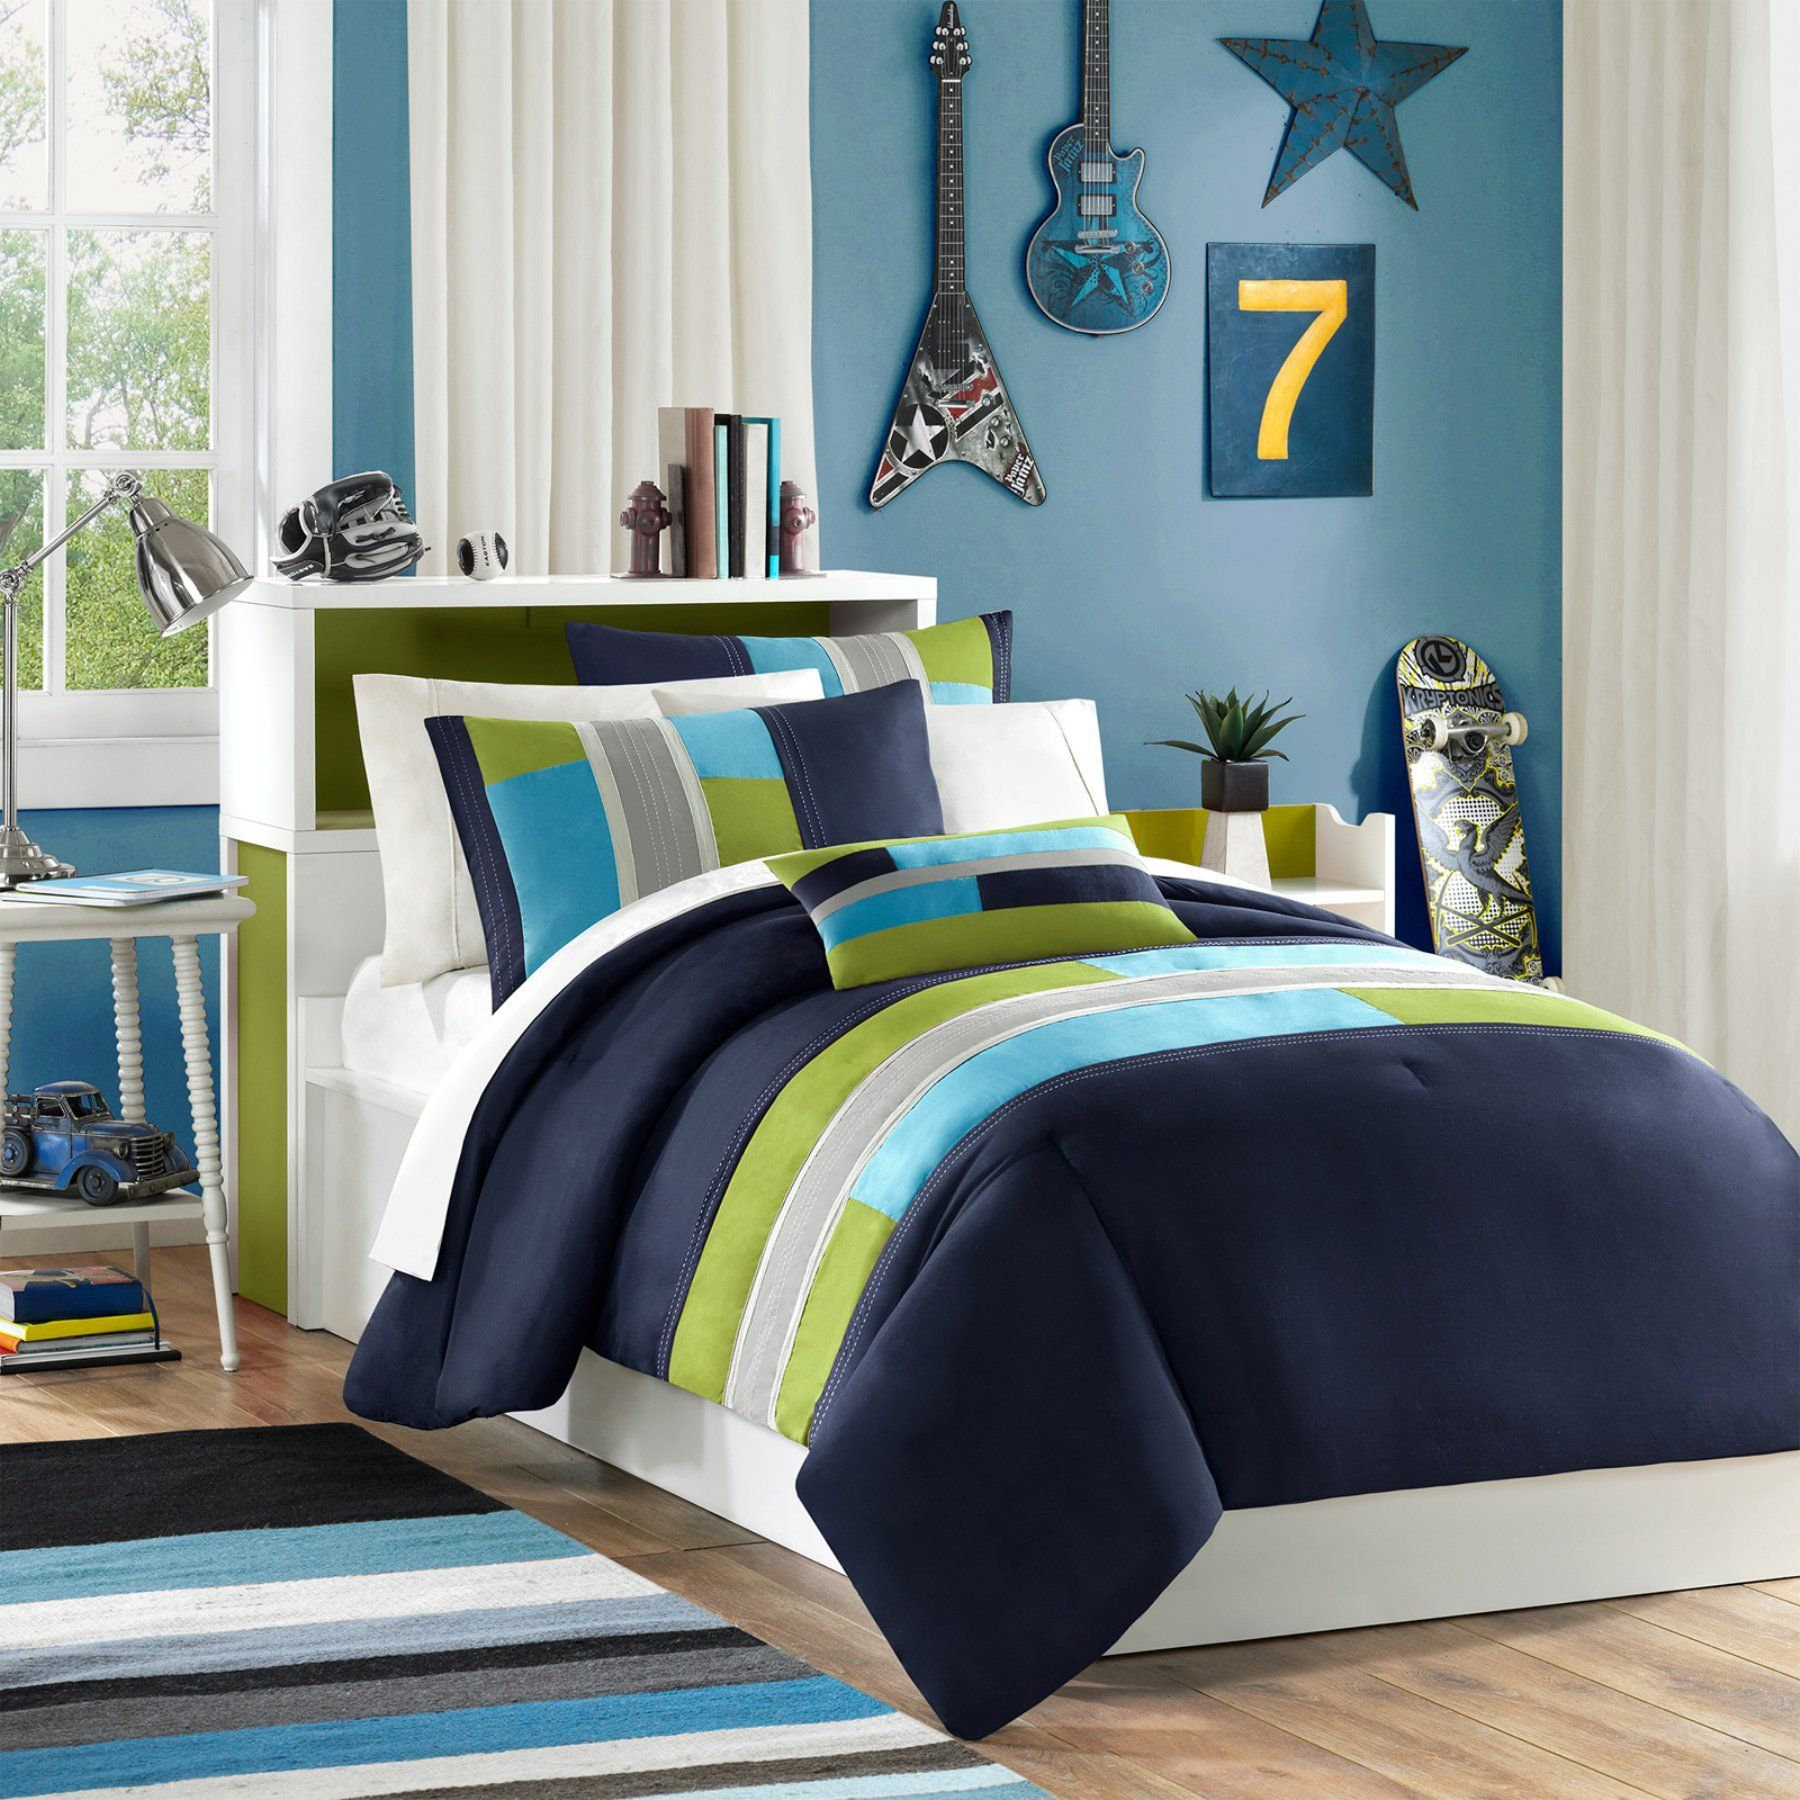 Switch comforter set by mizone mz comforter and products